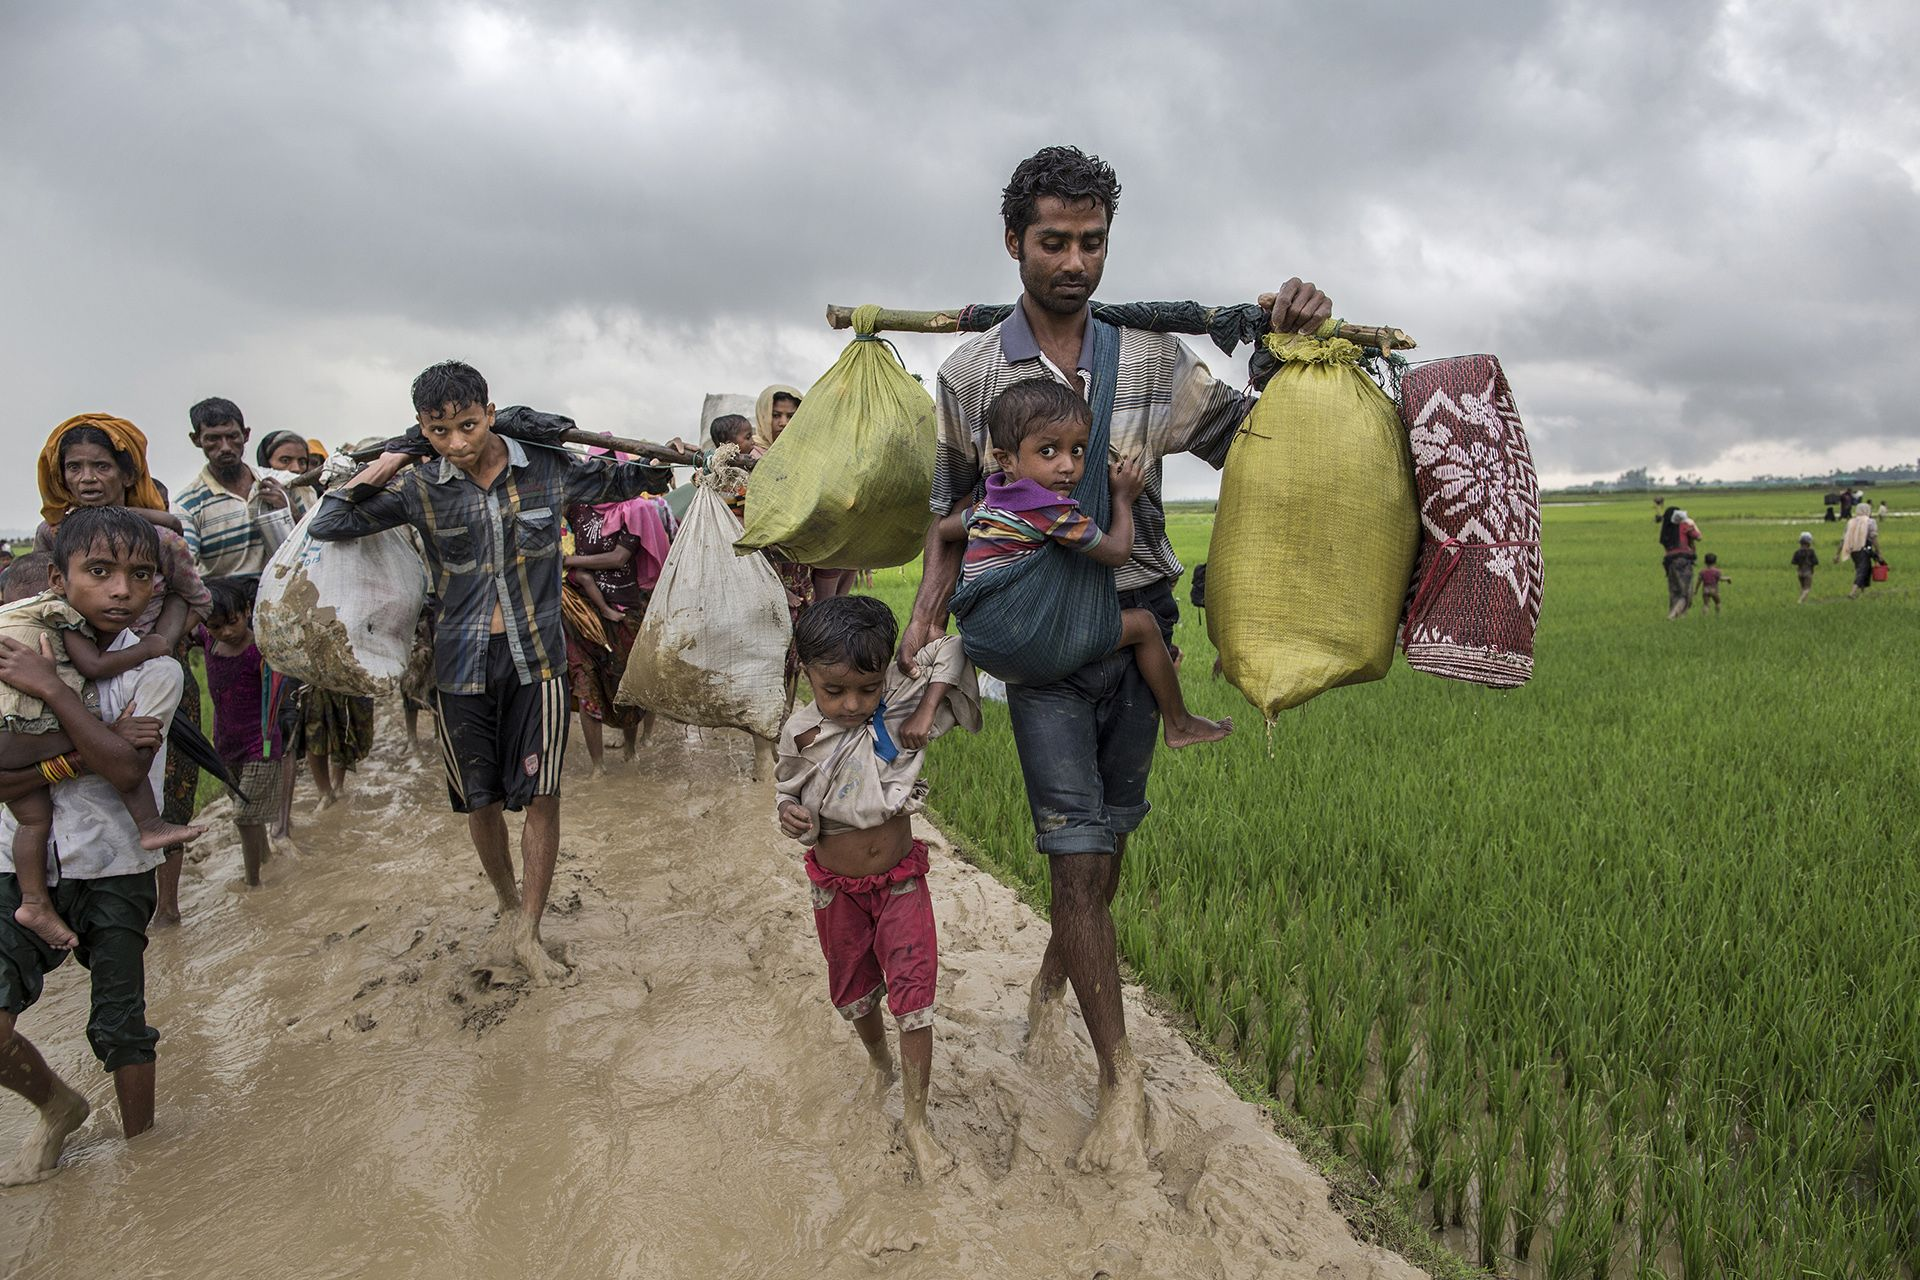 The Rohingya Exodus - 2